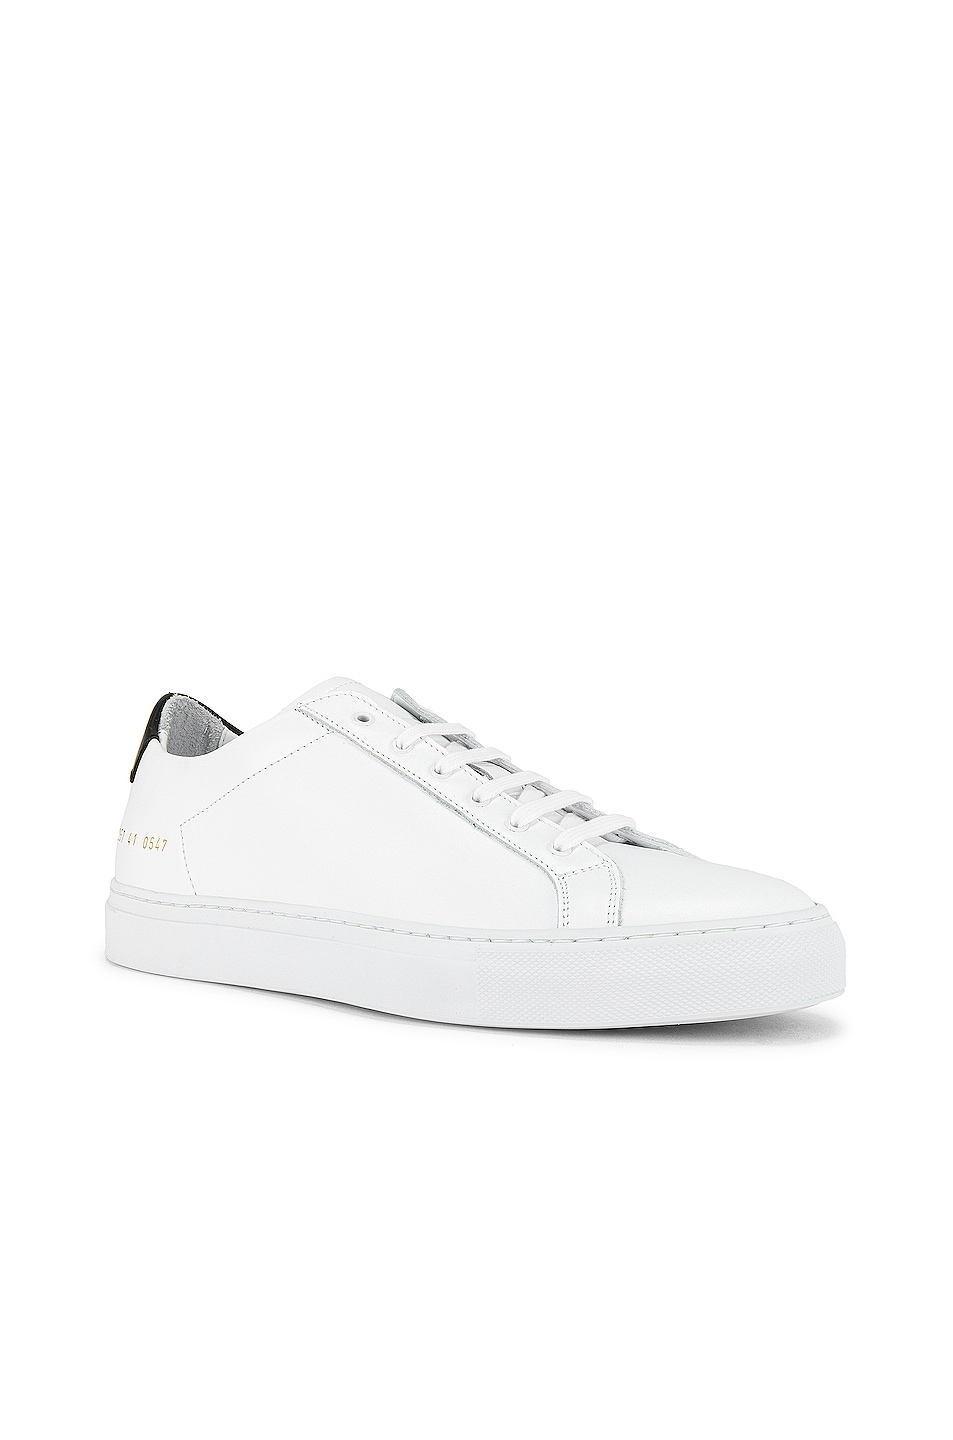 Image 1 of Common Projects Retro Low Sneaker in White & Black